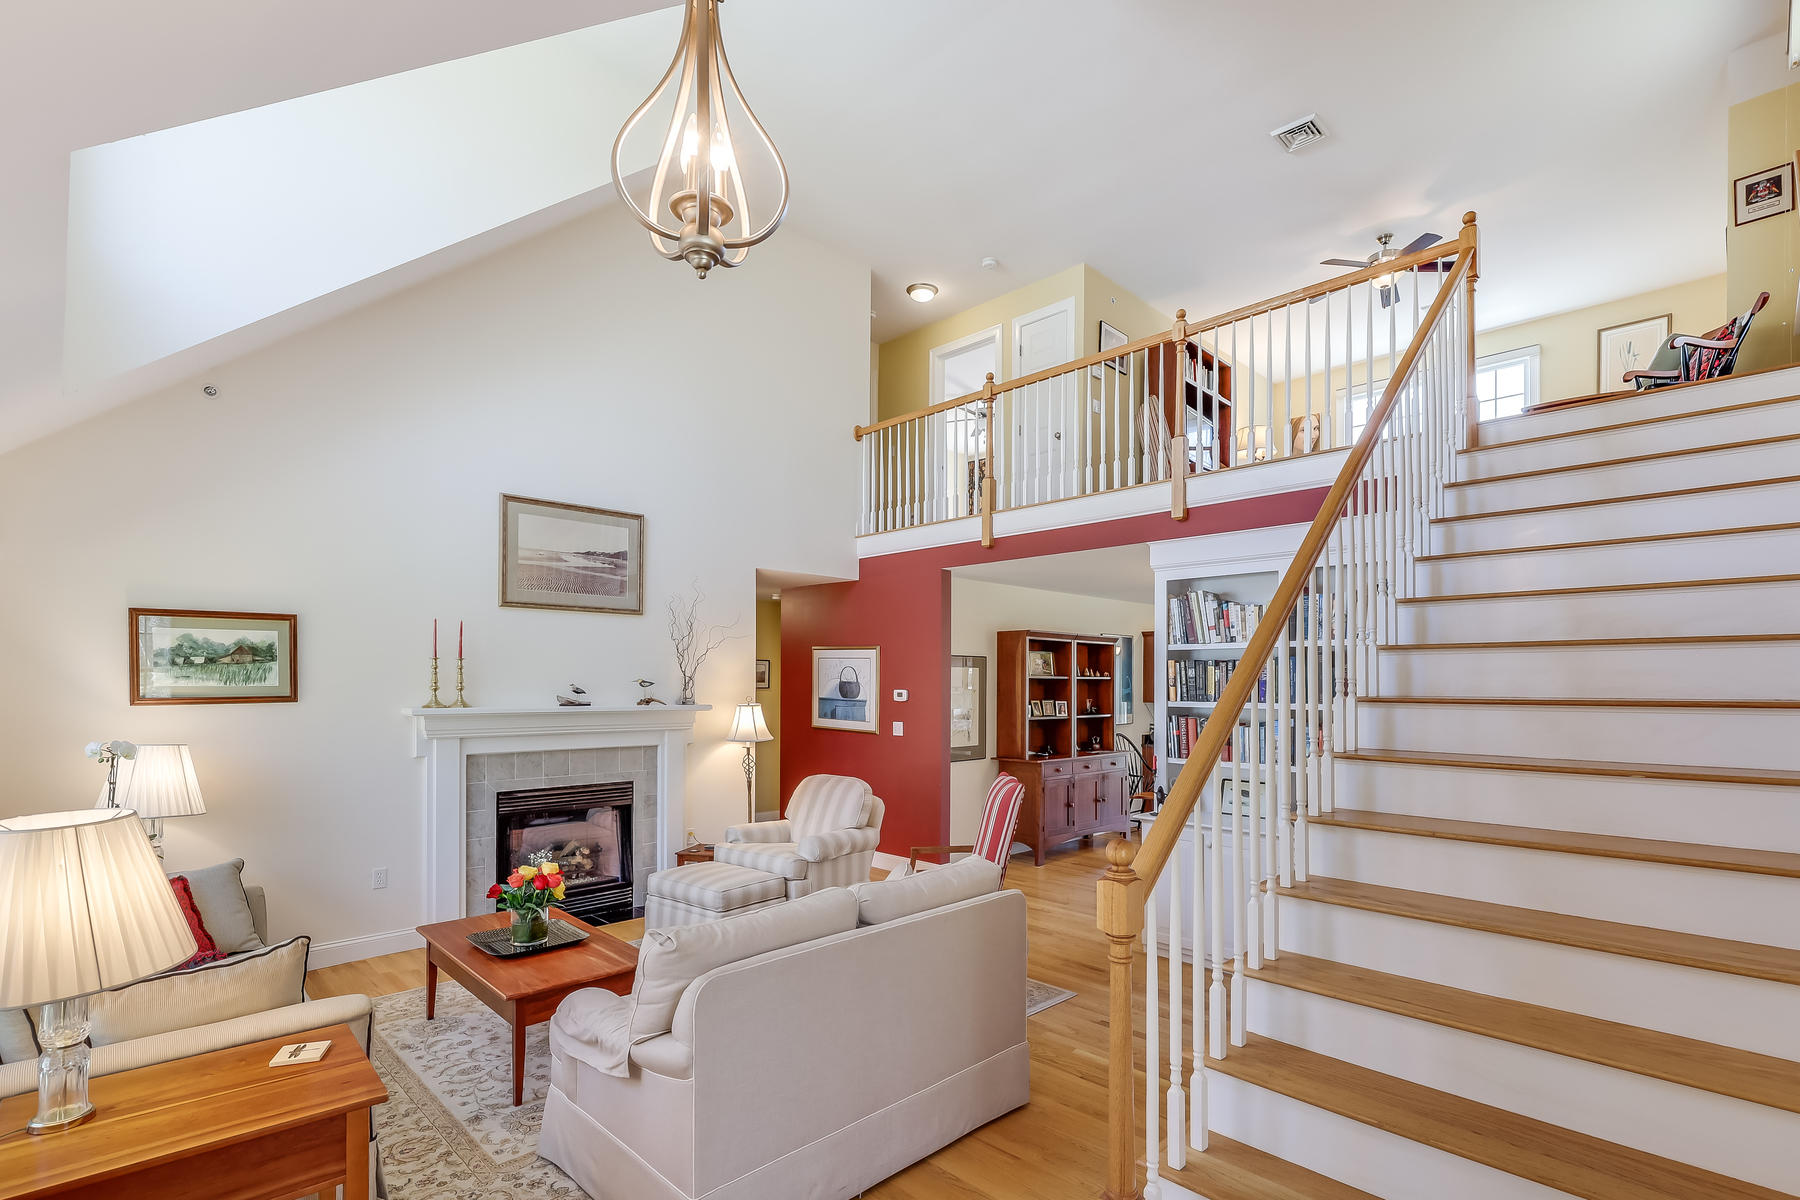 22 Anthony Orleans MA 02653